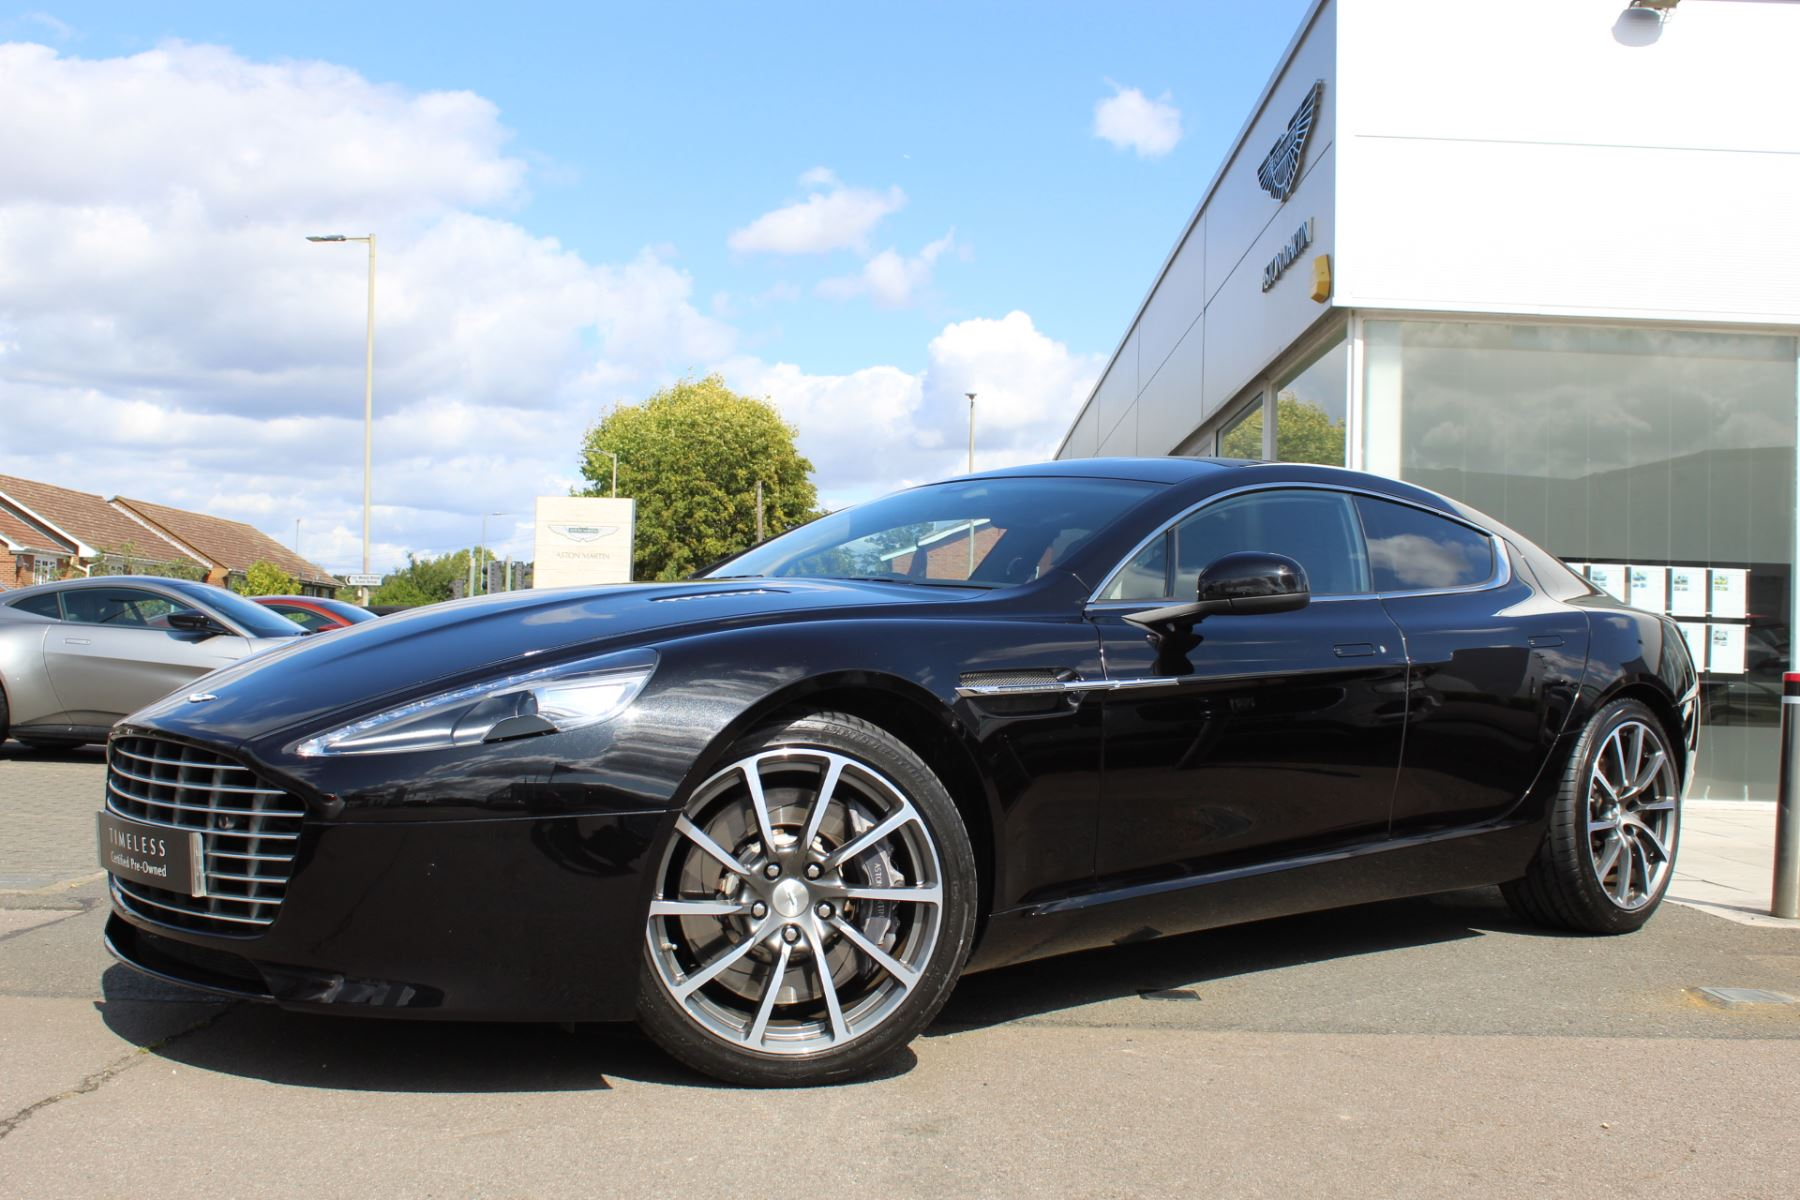 Aston Martin Rapide S V12 [552] 4dr Touchtronic III 5.9 Automatic 5 door Saloon (2018) image